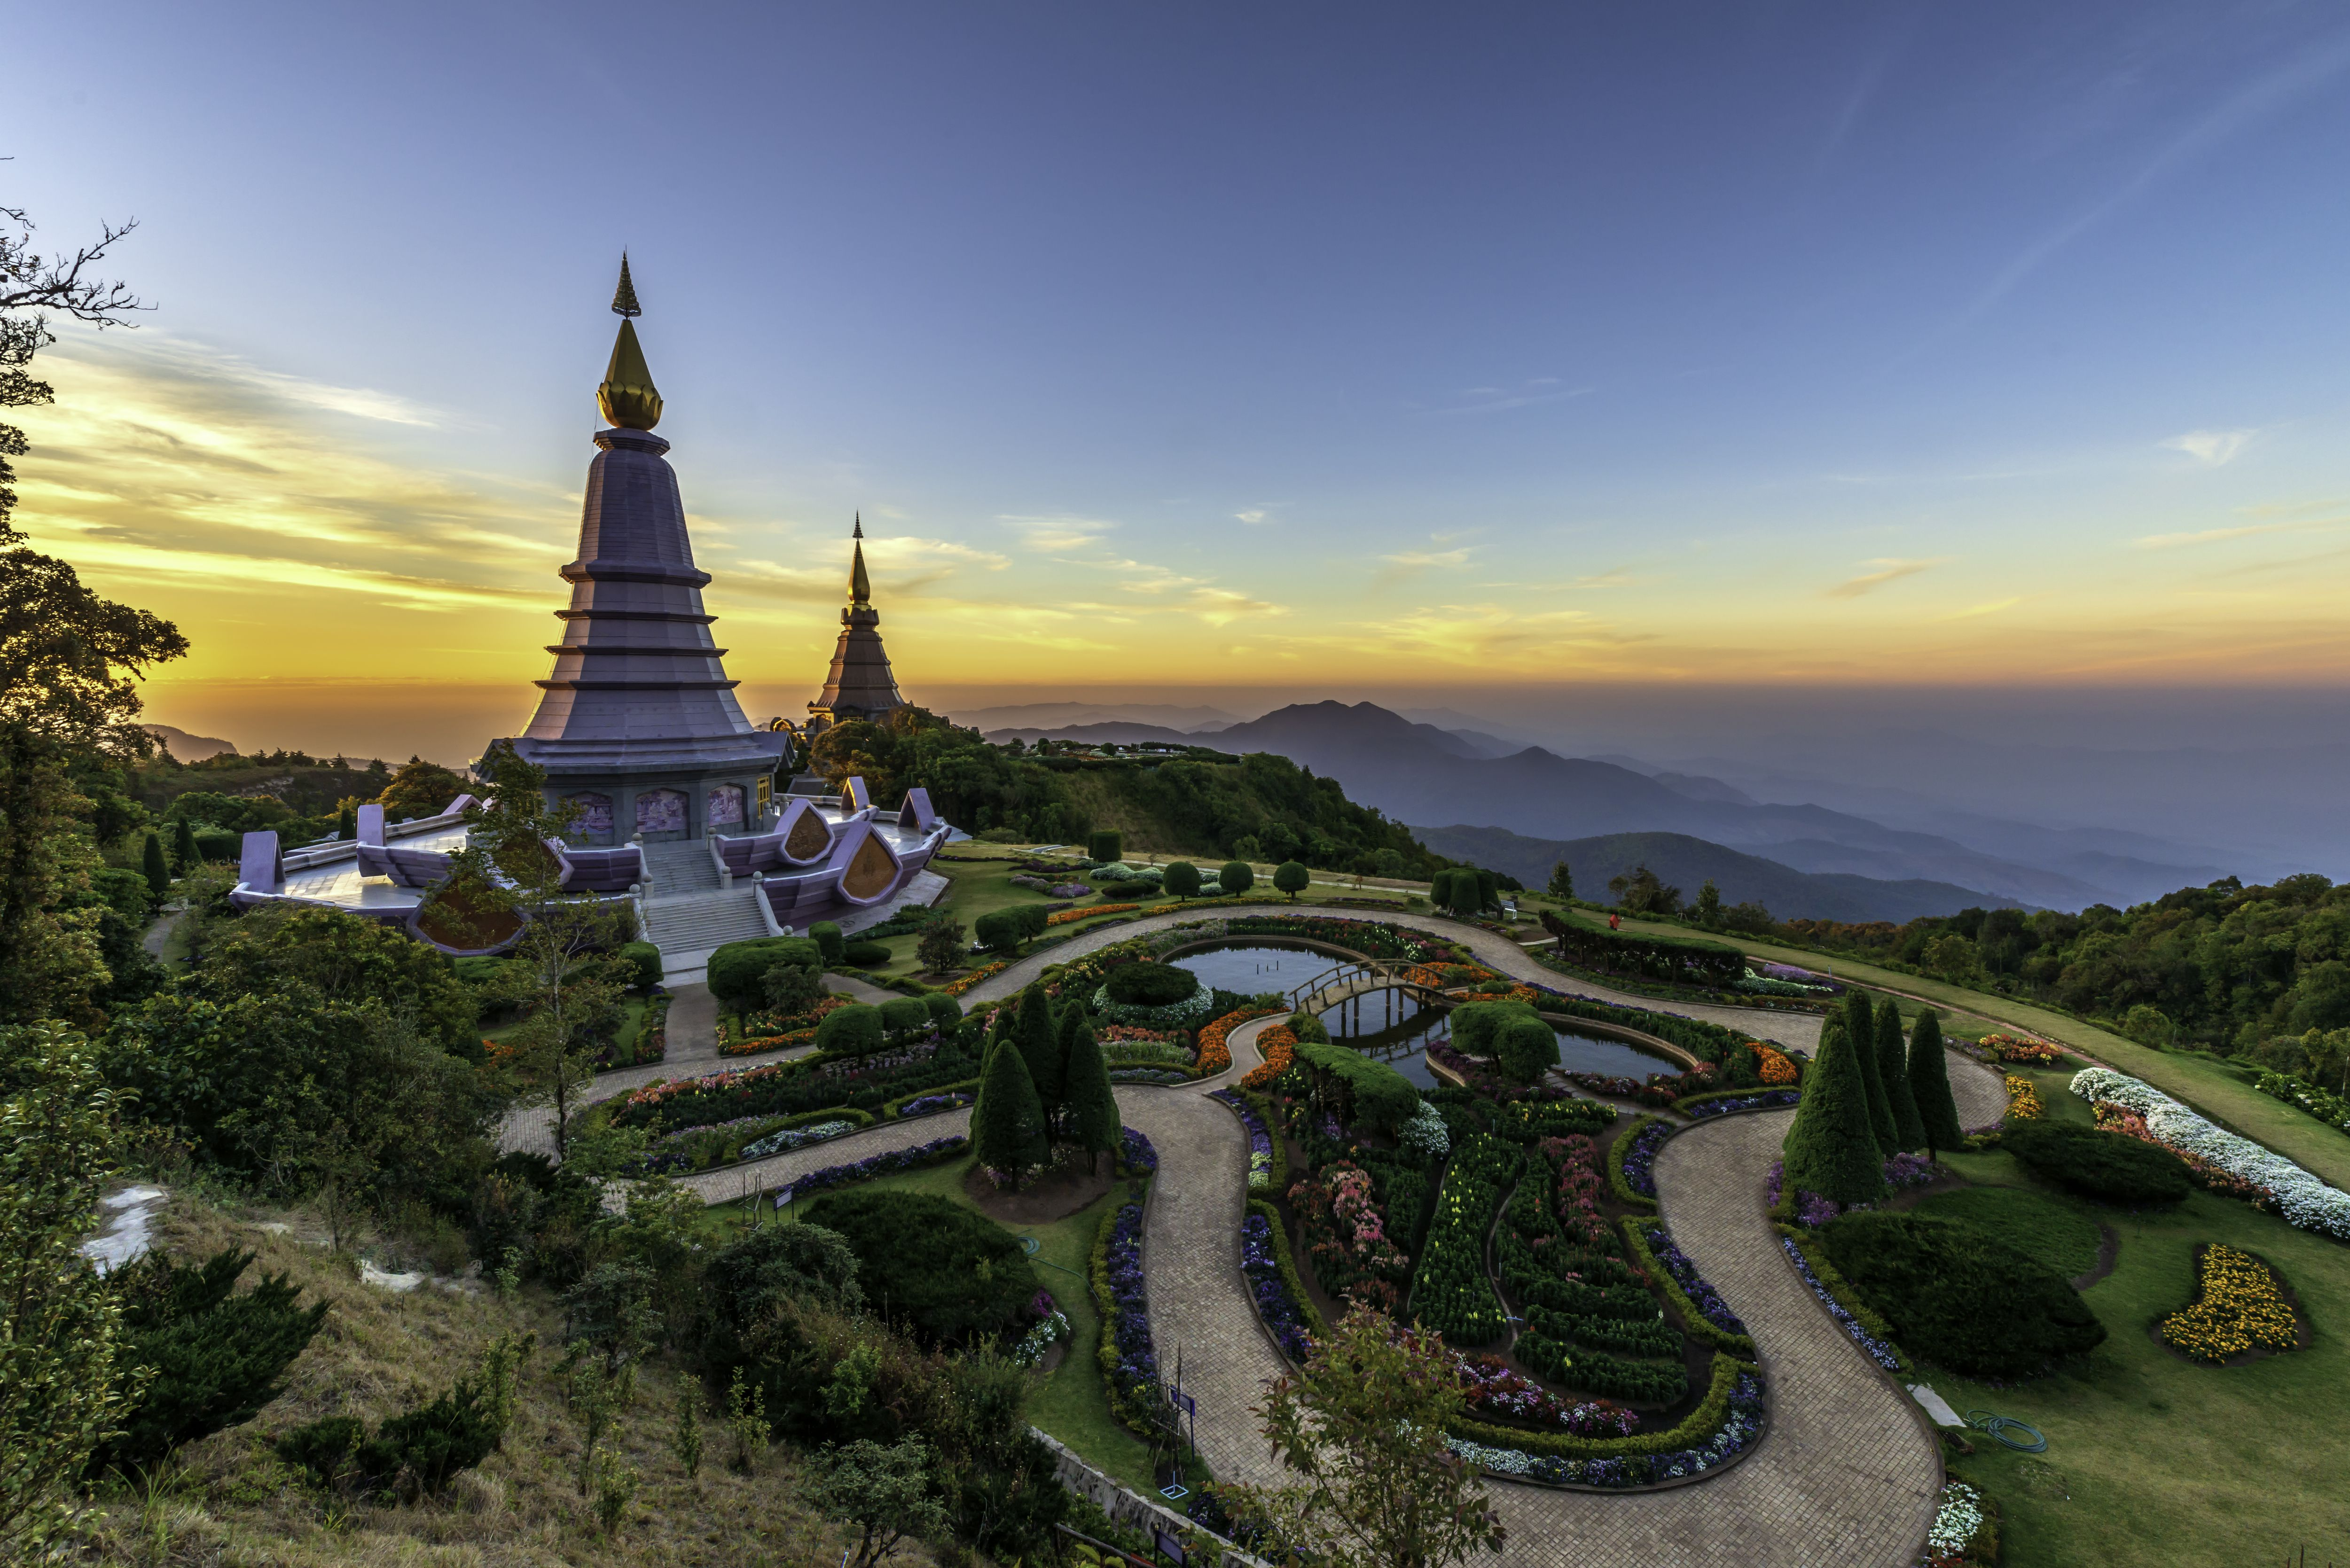 doi inthanon national park  the complete guide